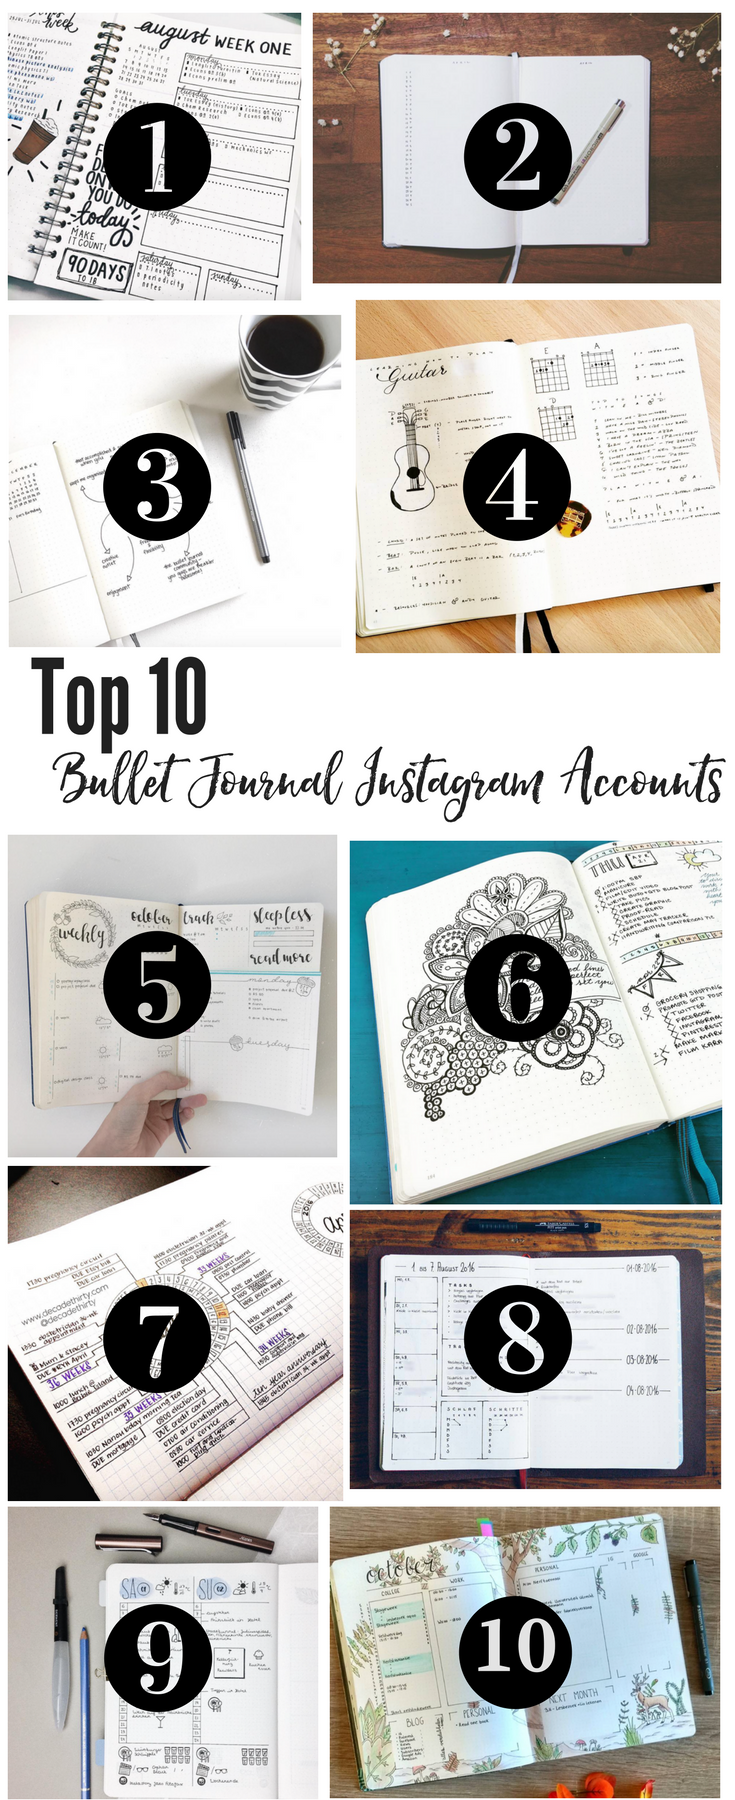 Top 10 instagram accounts for bullet journal ideas for Best home decor accounts on instagram